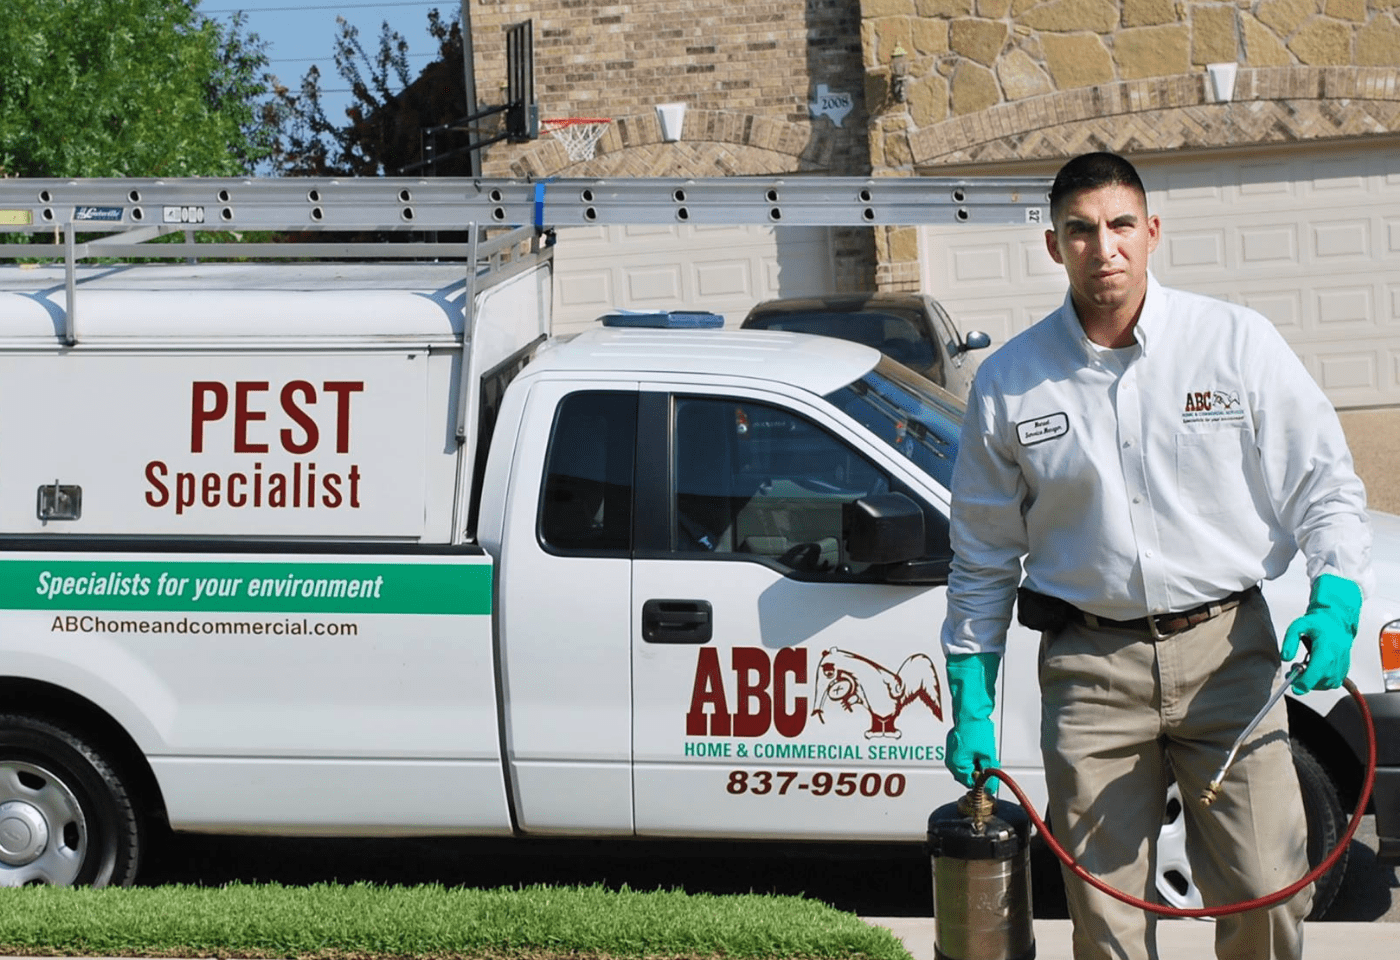 an ABC pest control specialist arriving at a home for treatment